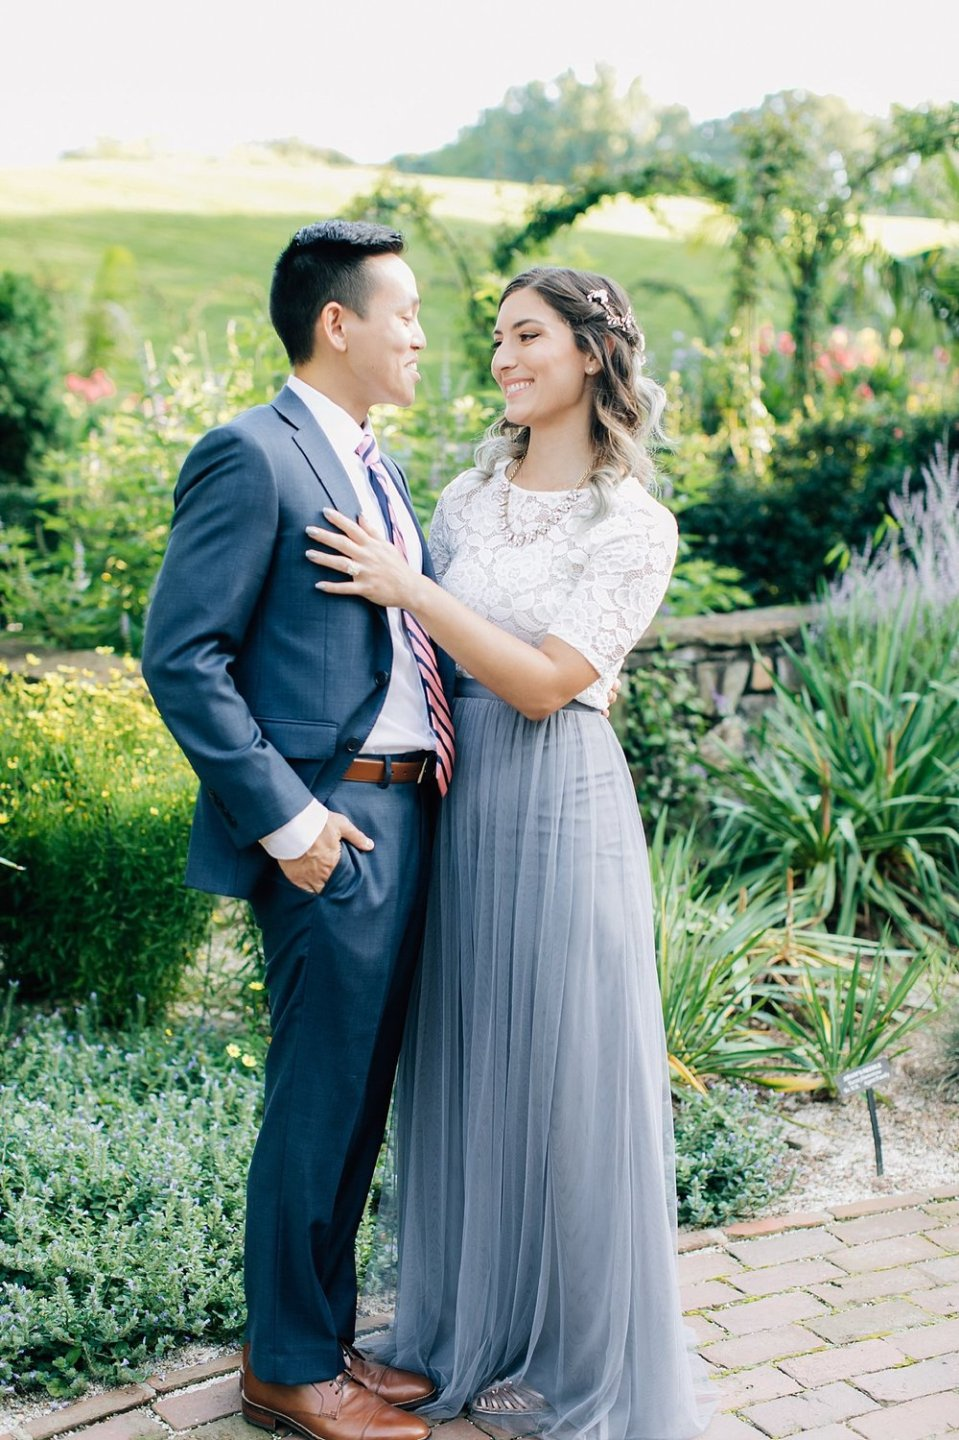 longwood gardens romantic summer engagement photography magdalena studios 0001